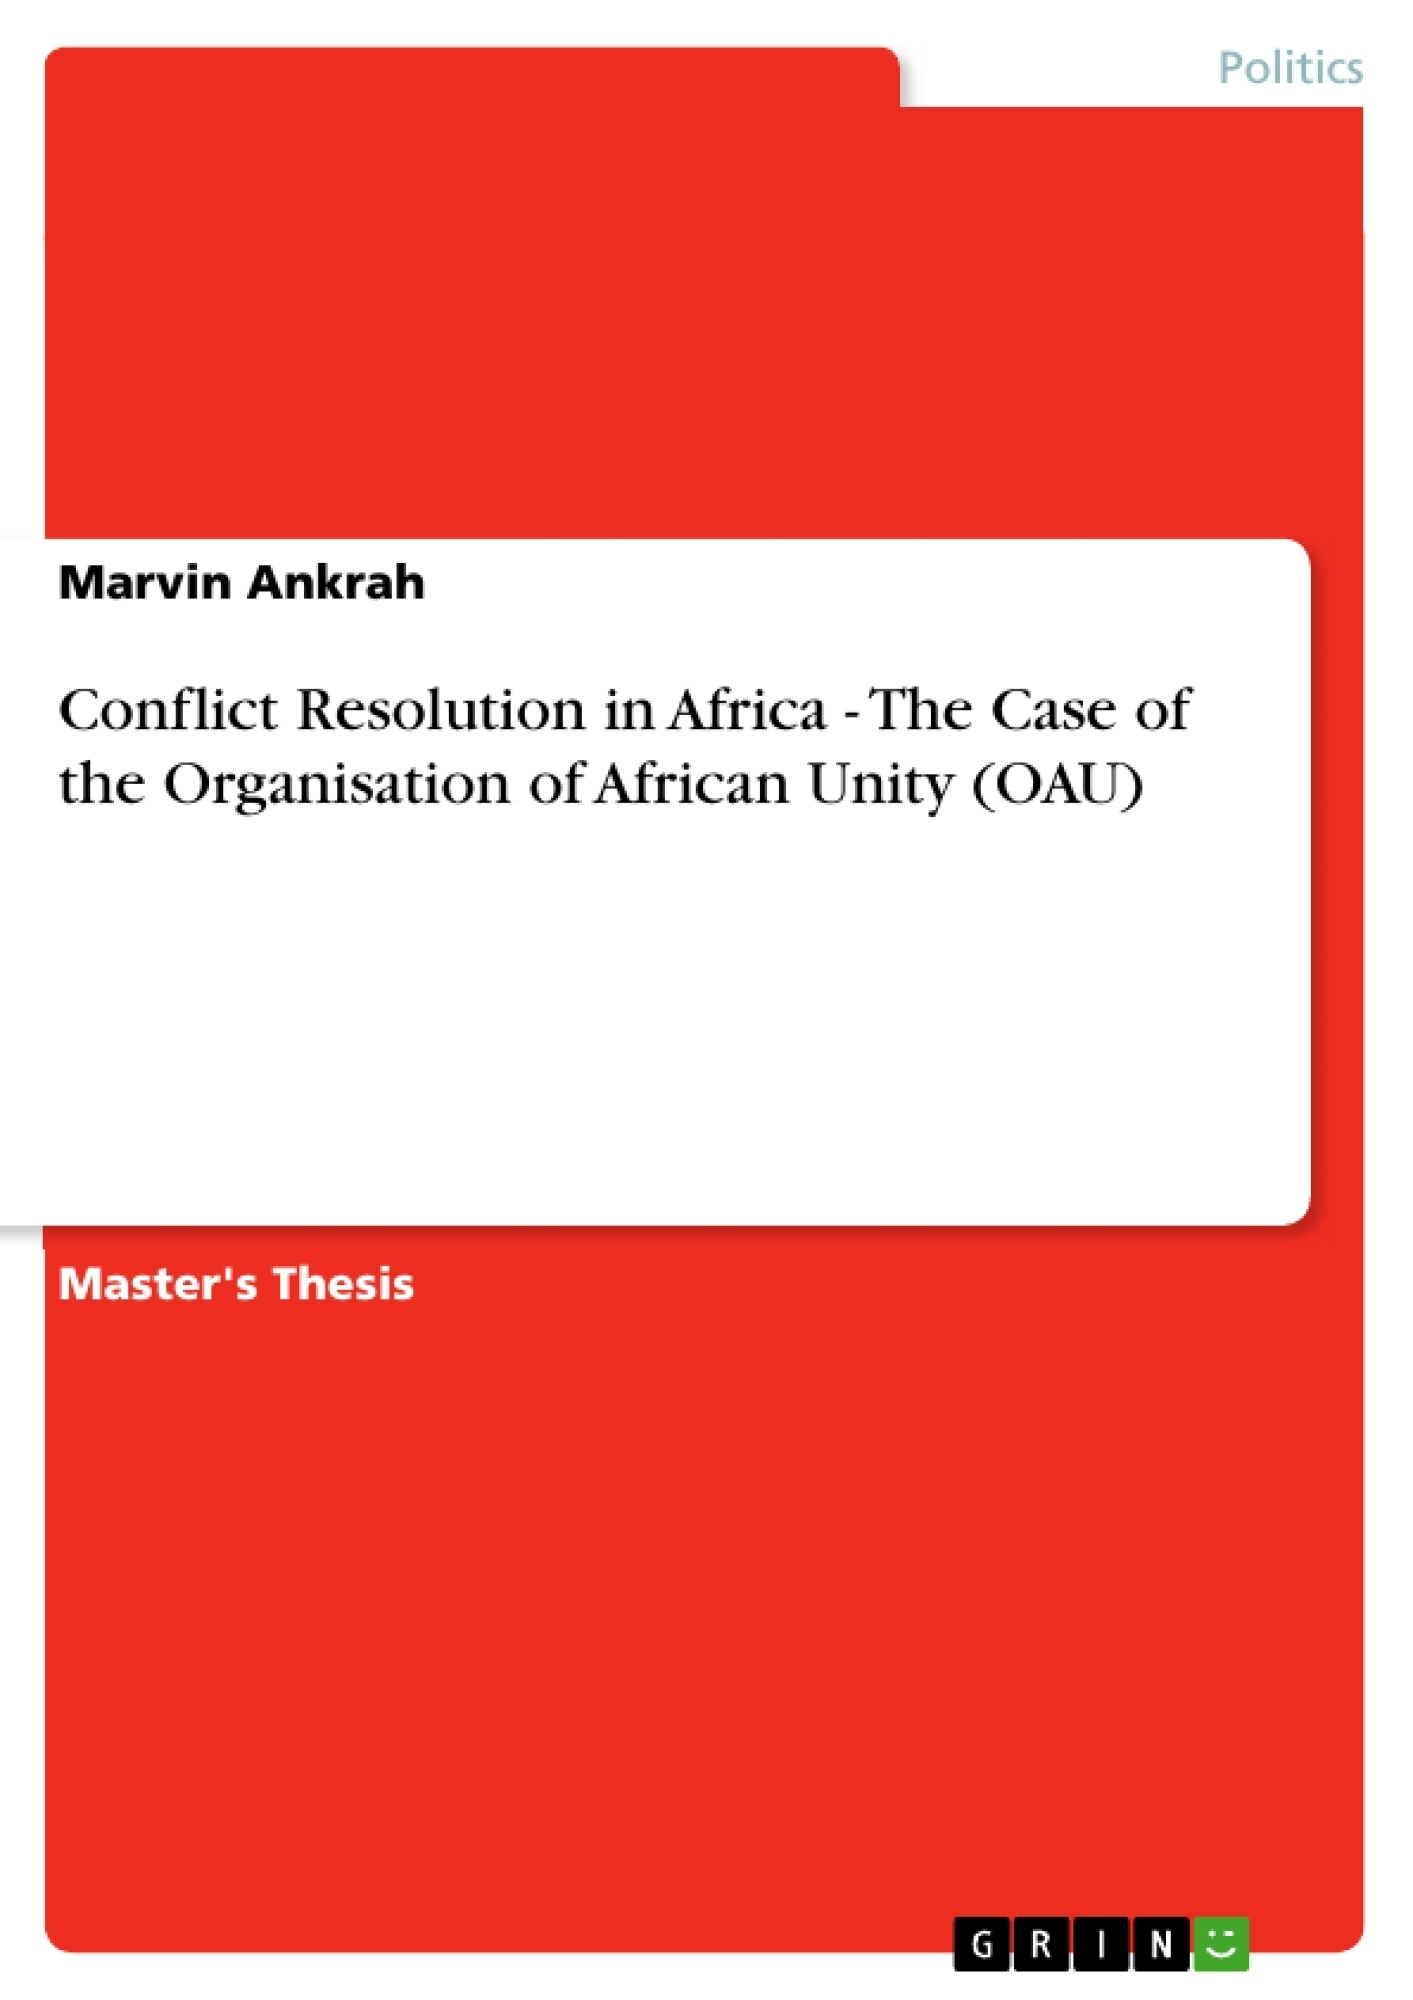 thesis on conflict in africa The thesis is premised on the background that the maxim 'african solutions to  african  this thesis is dedicated to the african union and conflict resolution.